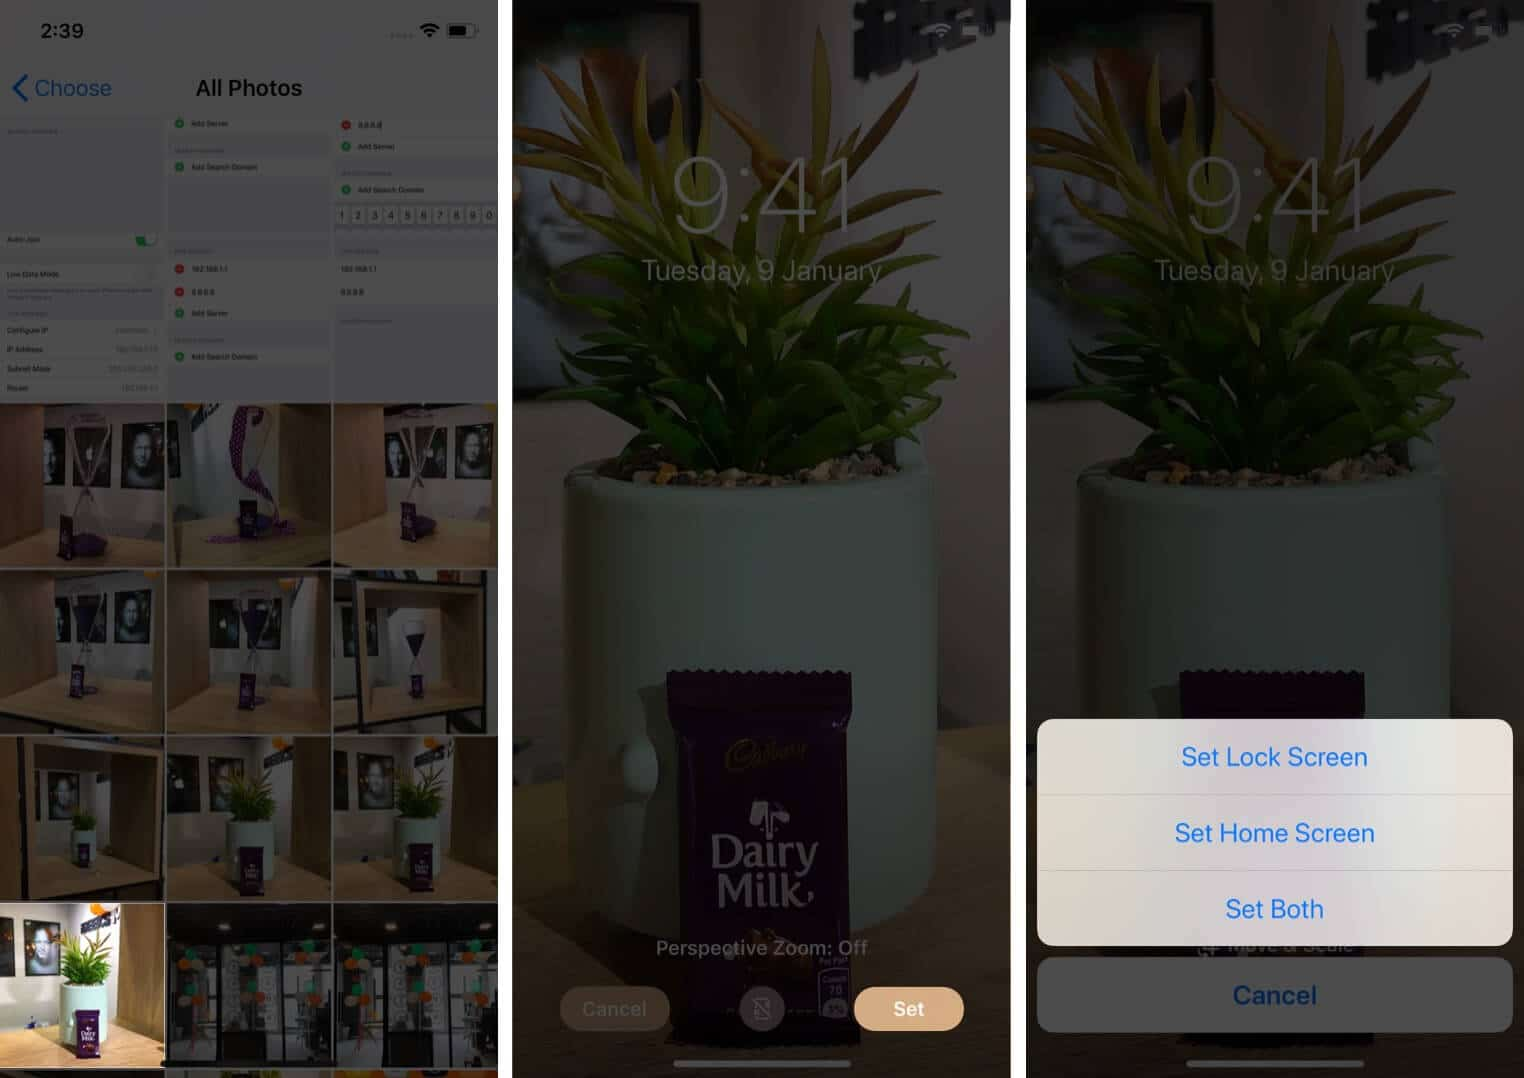 tap on photo then tap on set and select option to change wallpaper on iphone